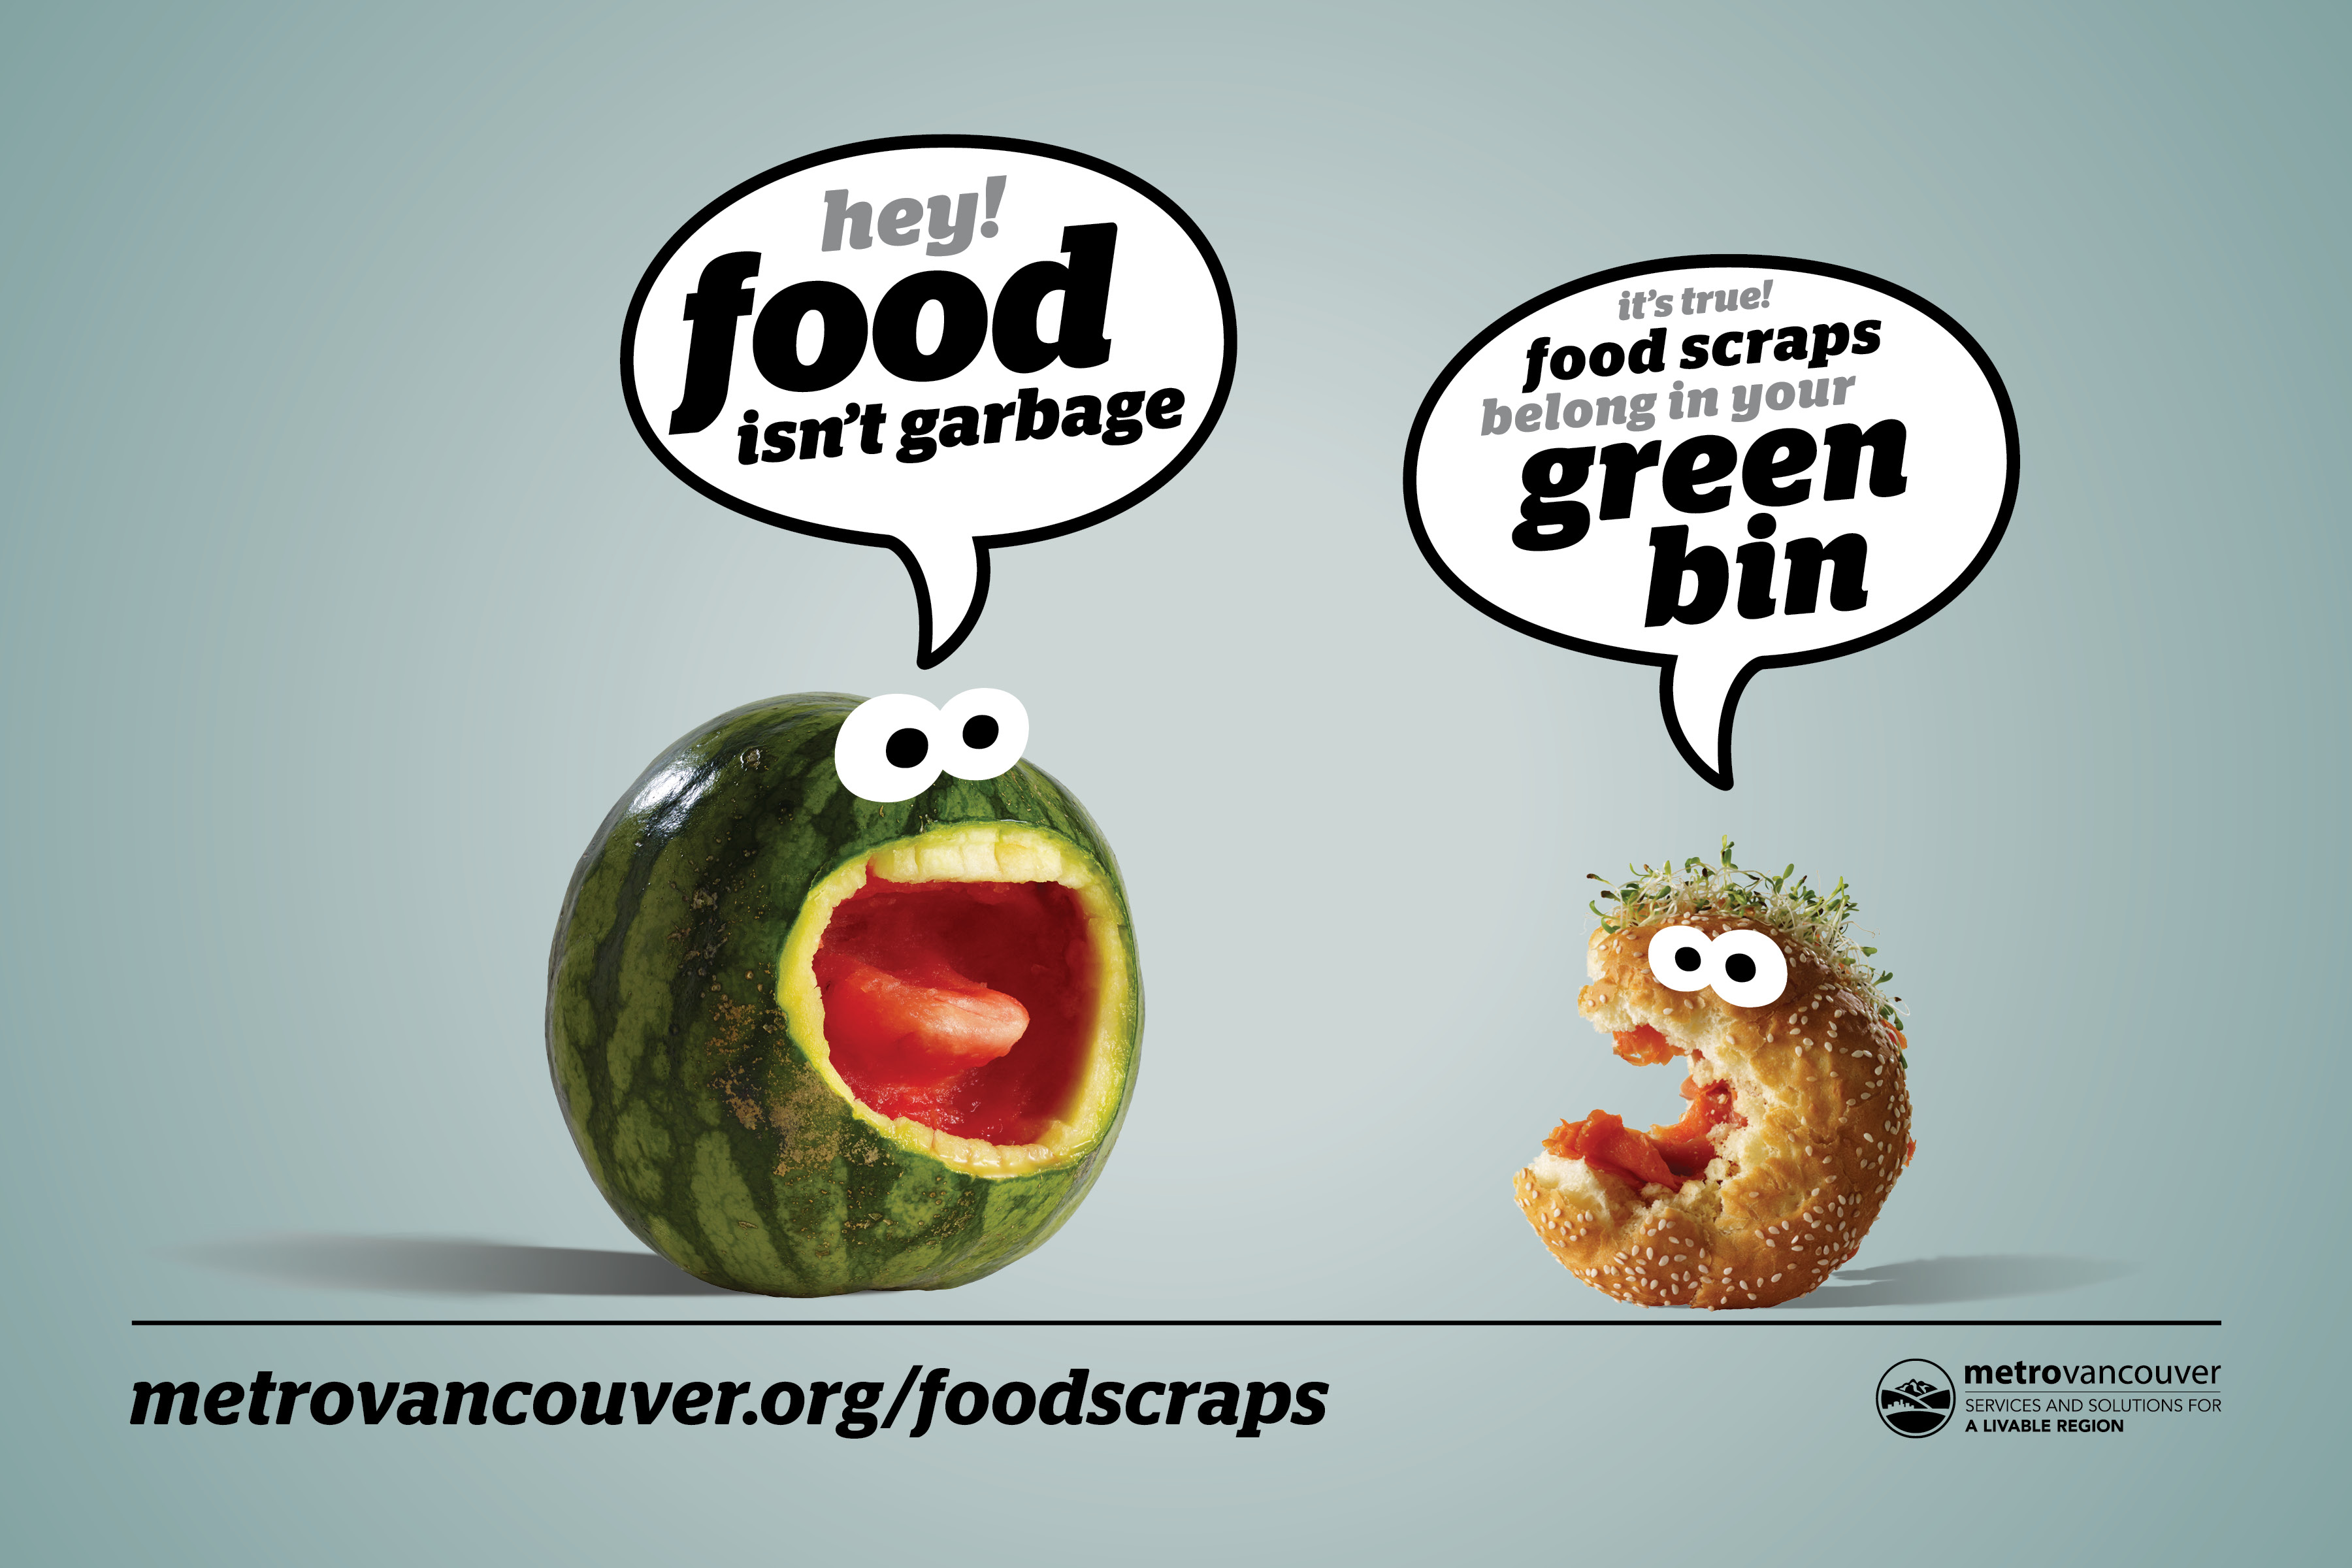 Trashing Recycle Your Food Scraps Food Is Not Garbage